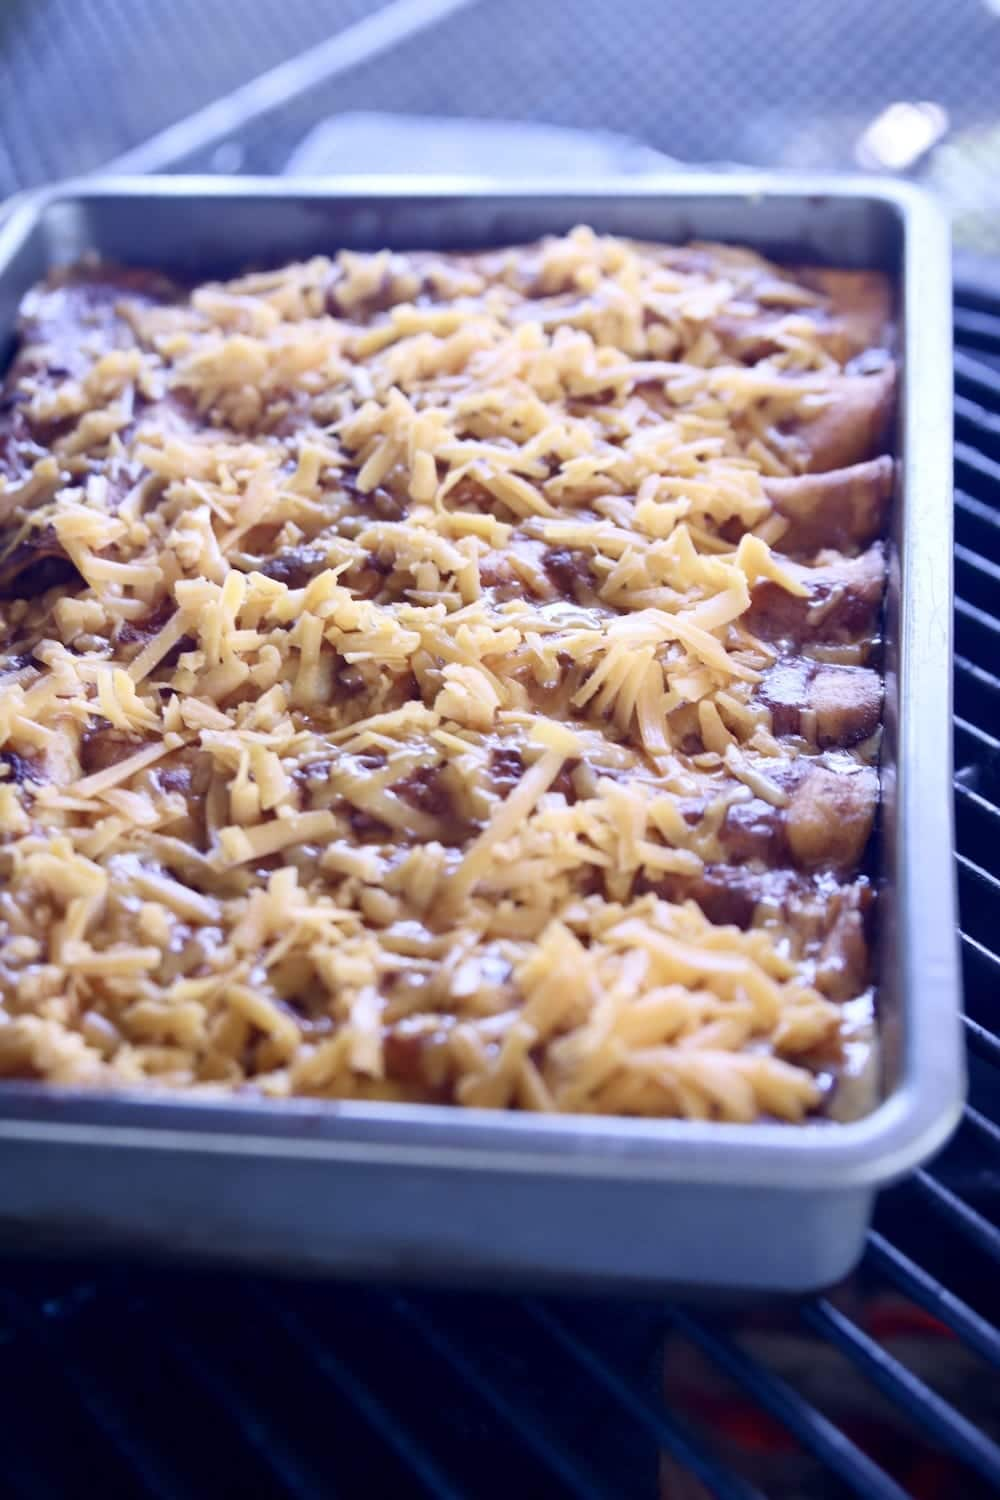 chicken enchiladas on a grill, topped with shredded cheese